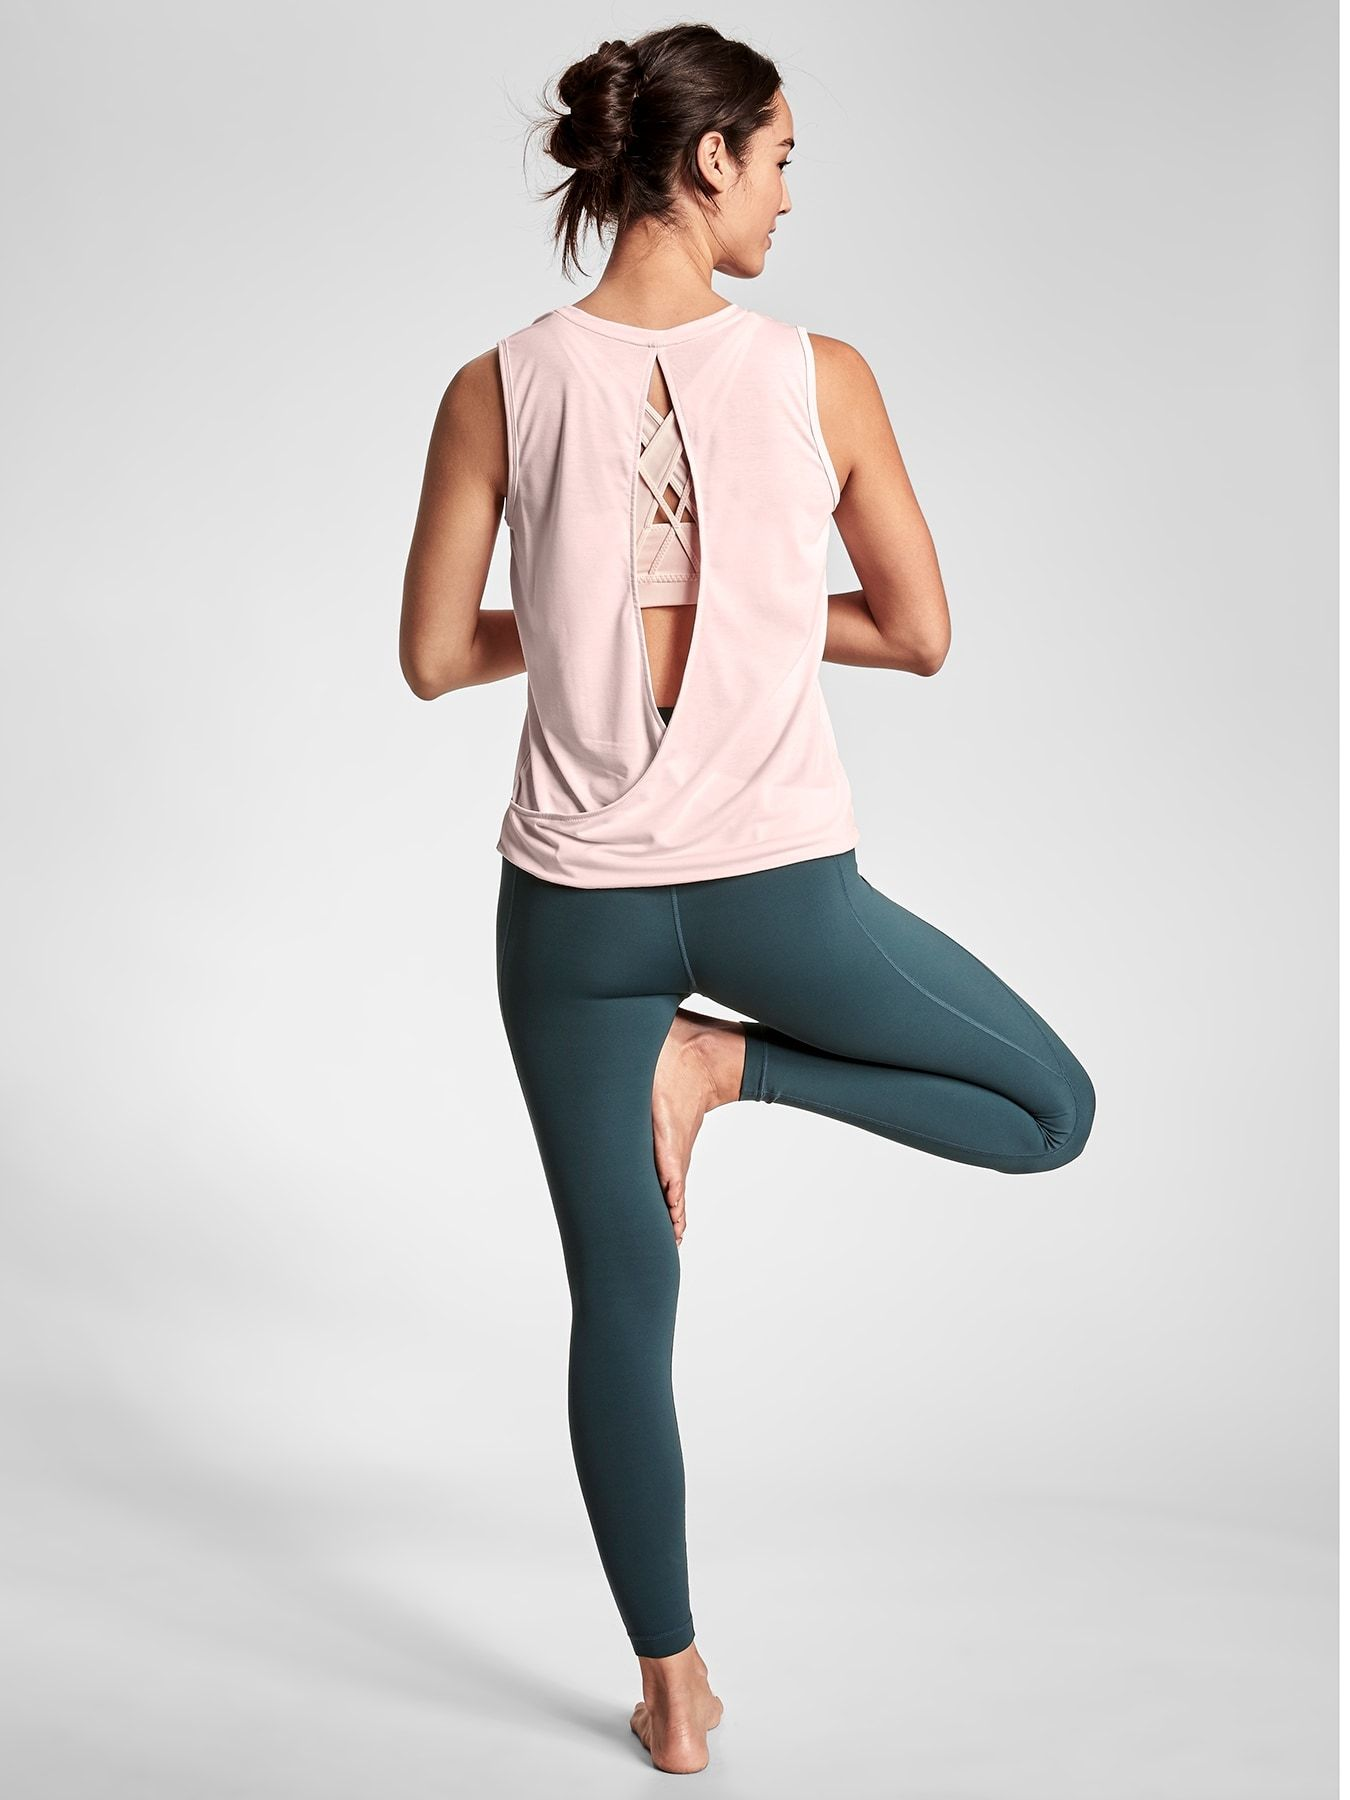 Love these colors together. Fashion, Fitness trends, Style